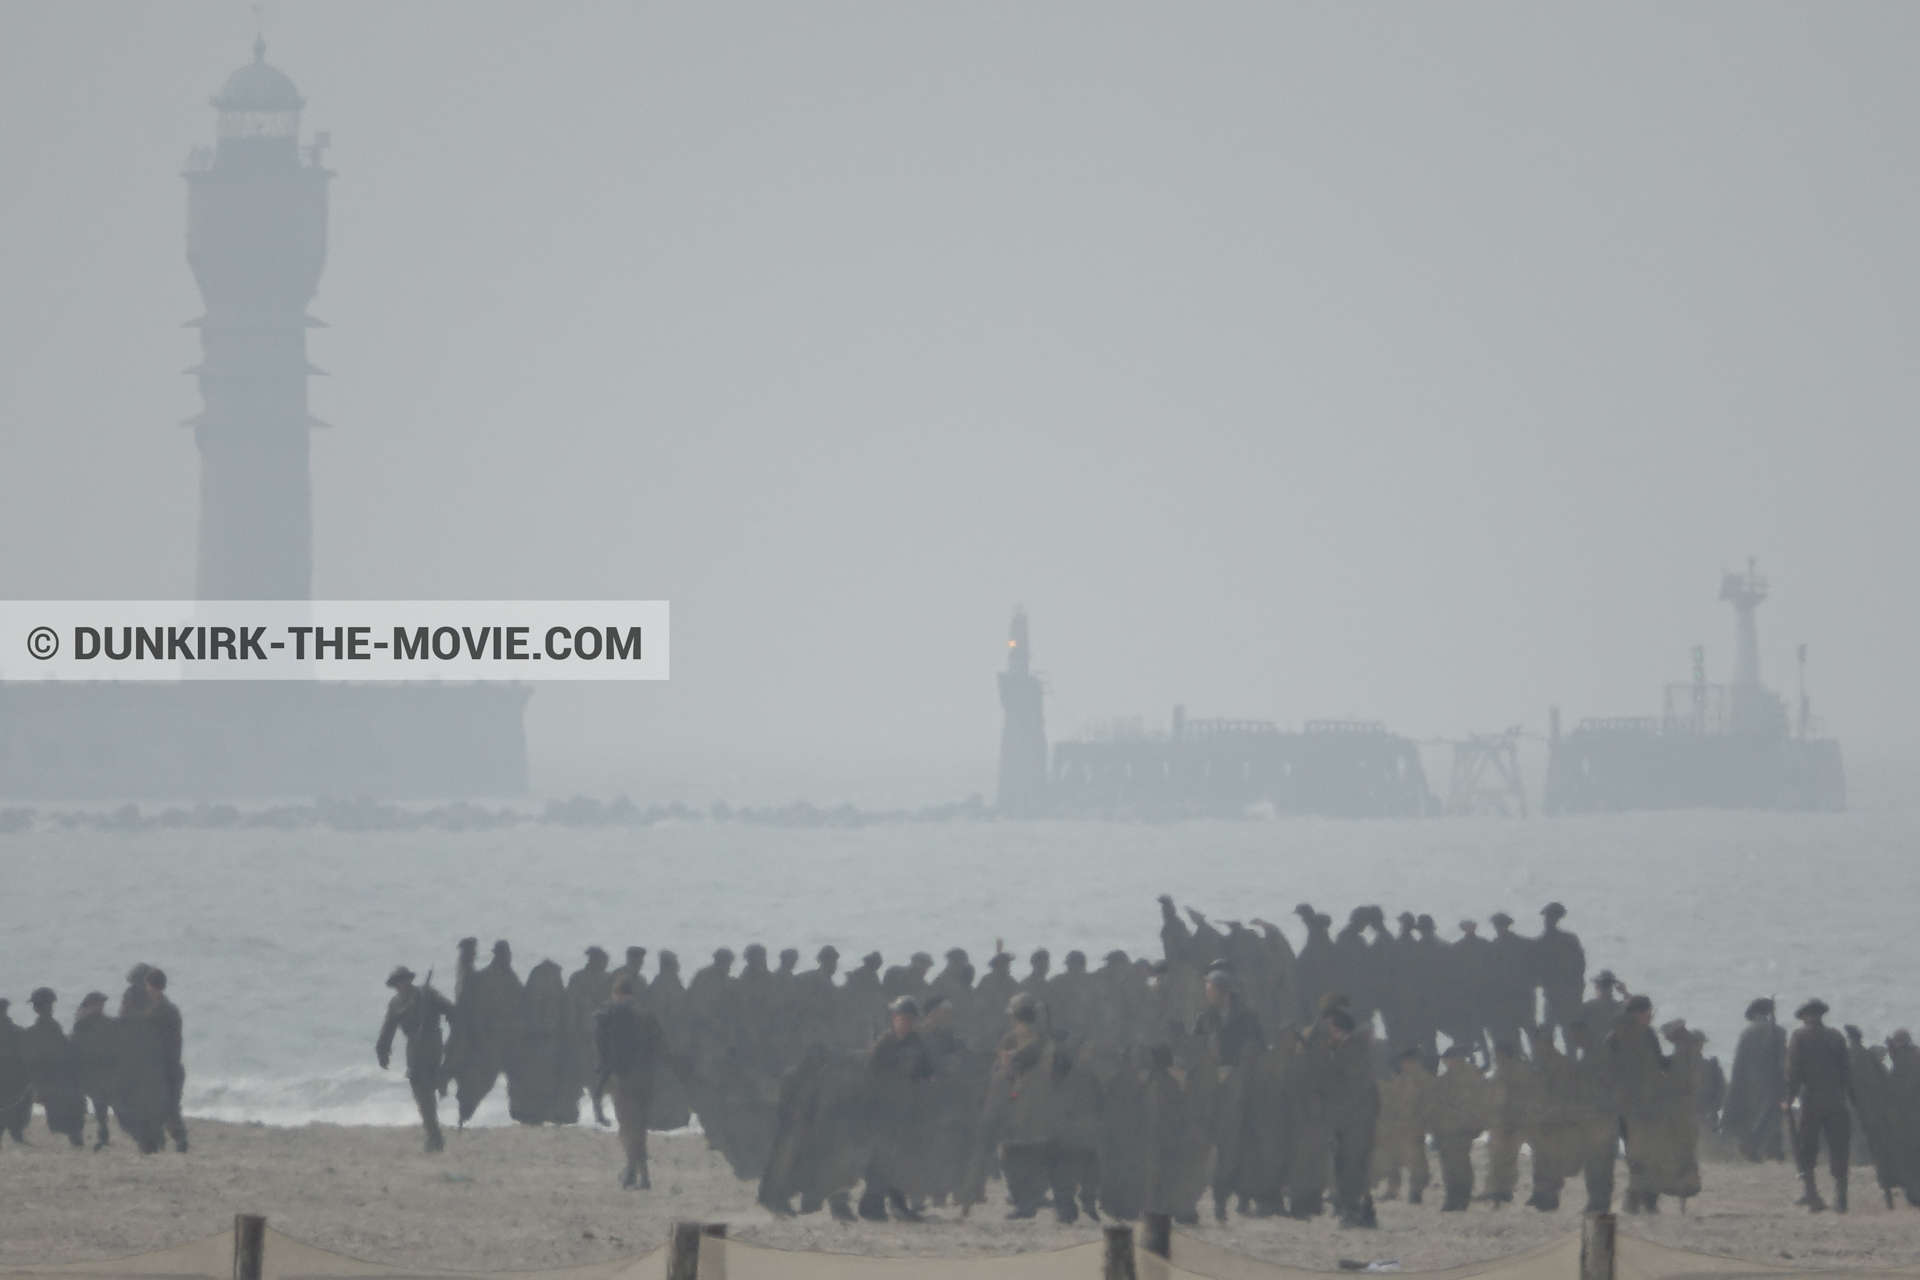 Picture with grey sky, supernumeraries, St Pol sur Mer lighthouse, beach,  from behind the scene of the Dunkirk movie by Nolan